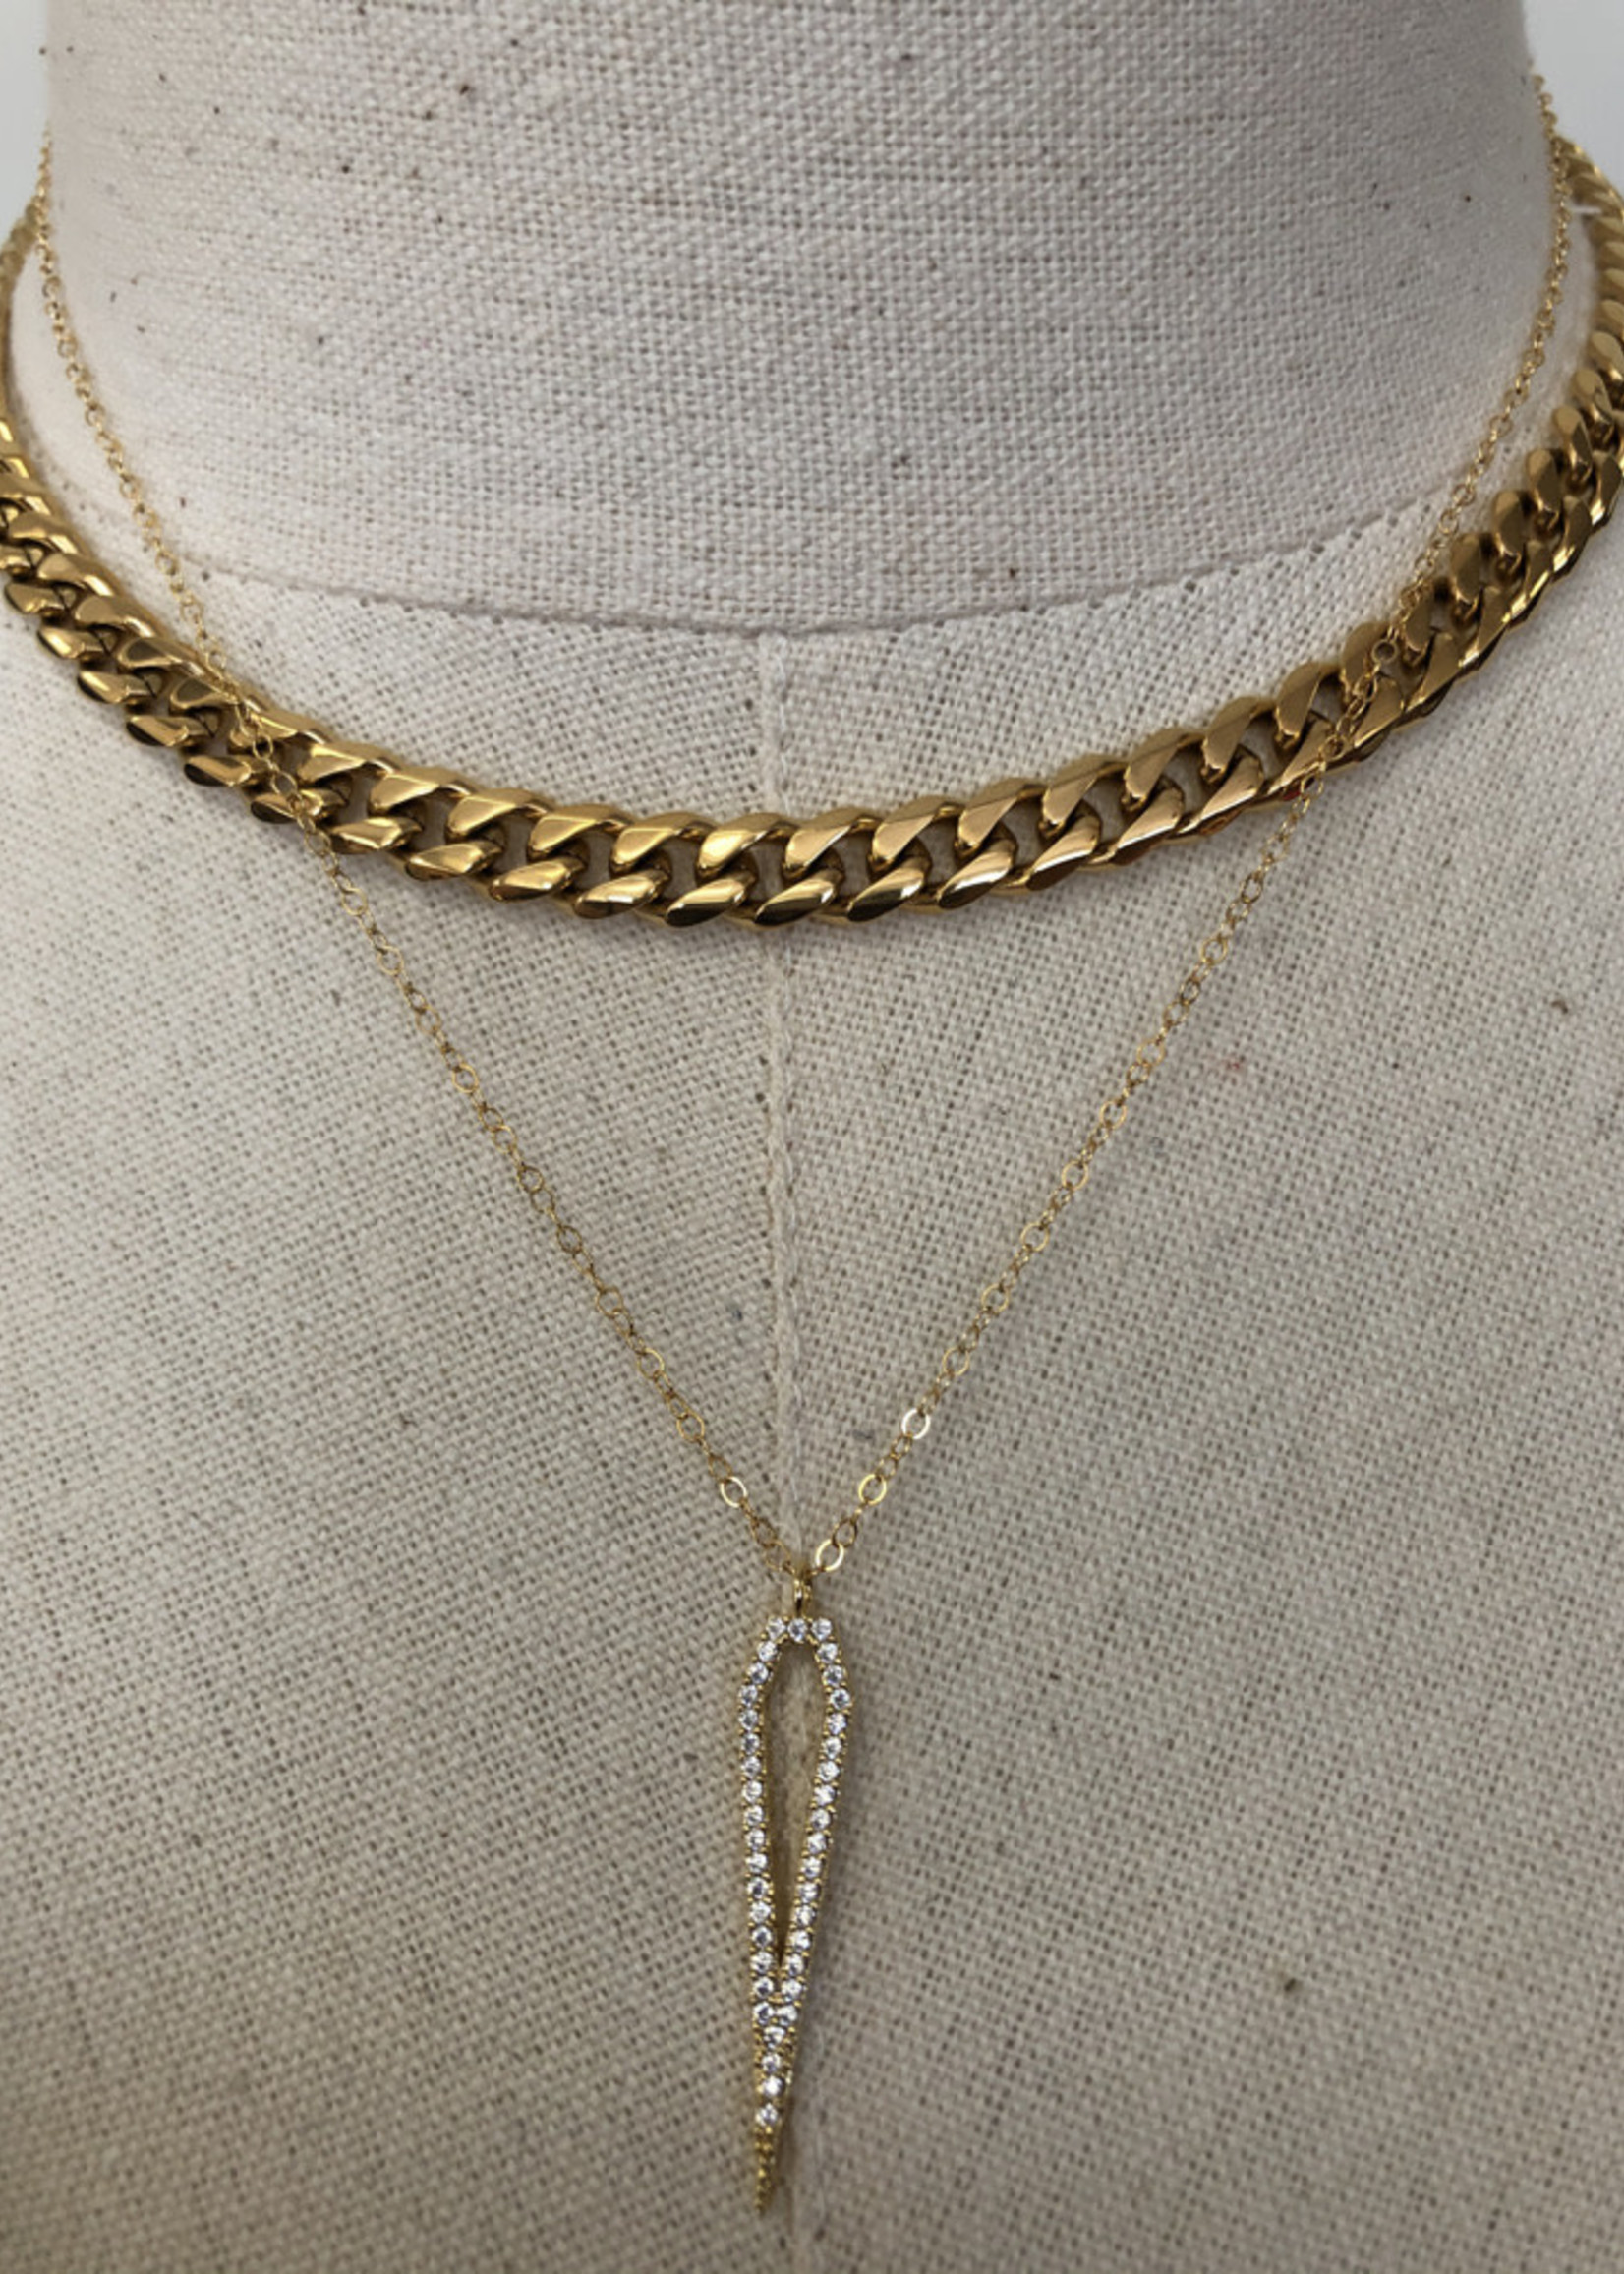 Admiral Row gold pave stone pentagon necklace